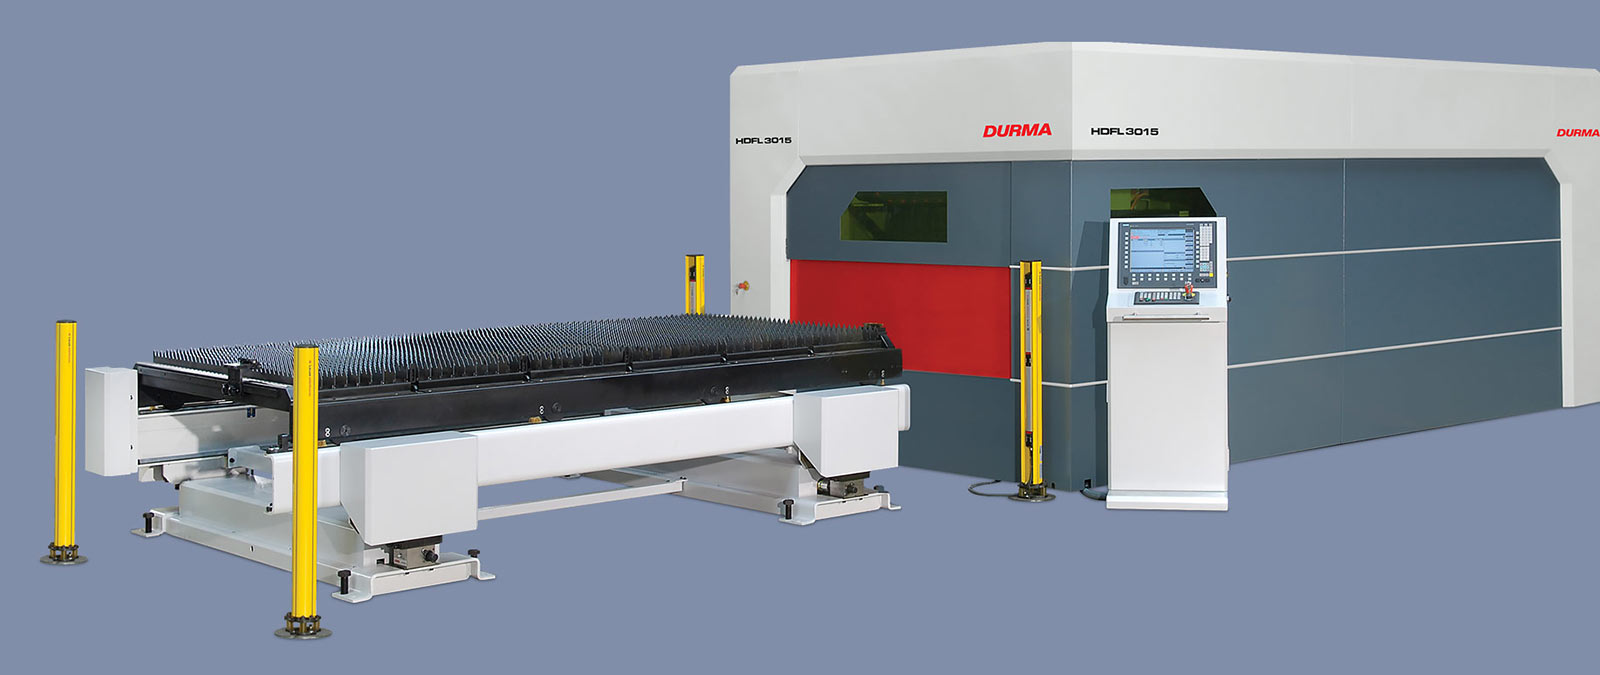 Durma Fiber CNC Laser Cutting Machine 3015 - 5 axis bevel head laser, bevel head laser - UK Supplier and Distributor